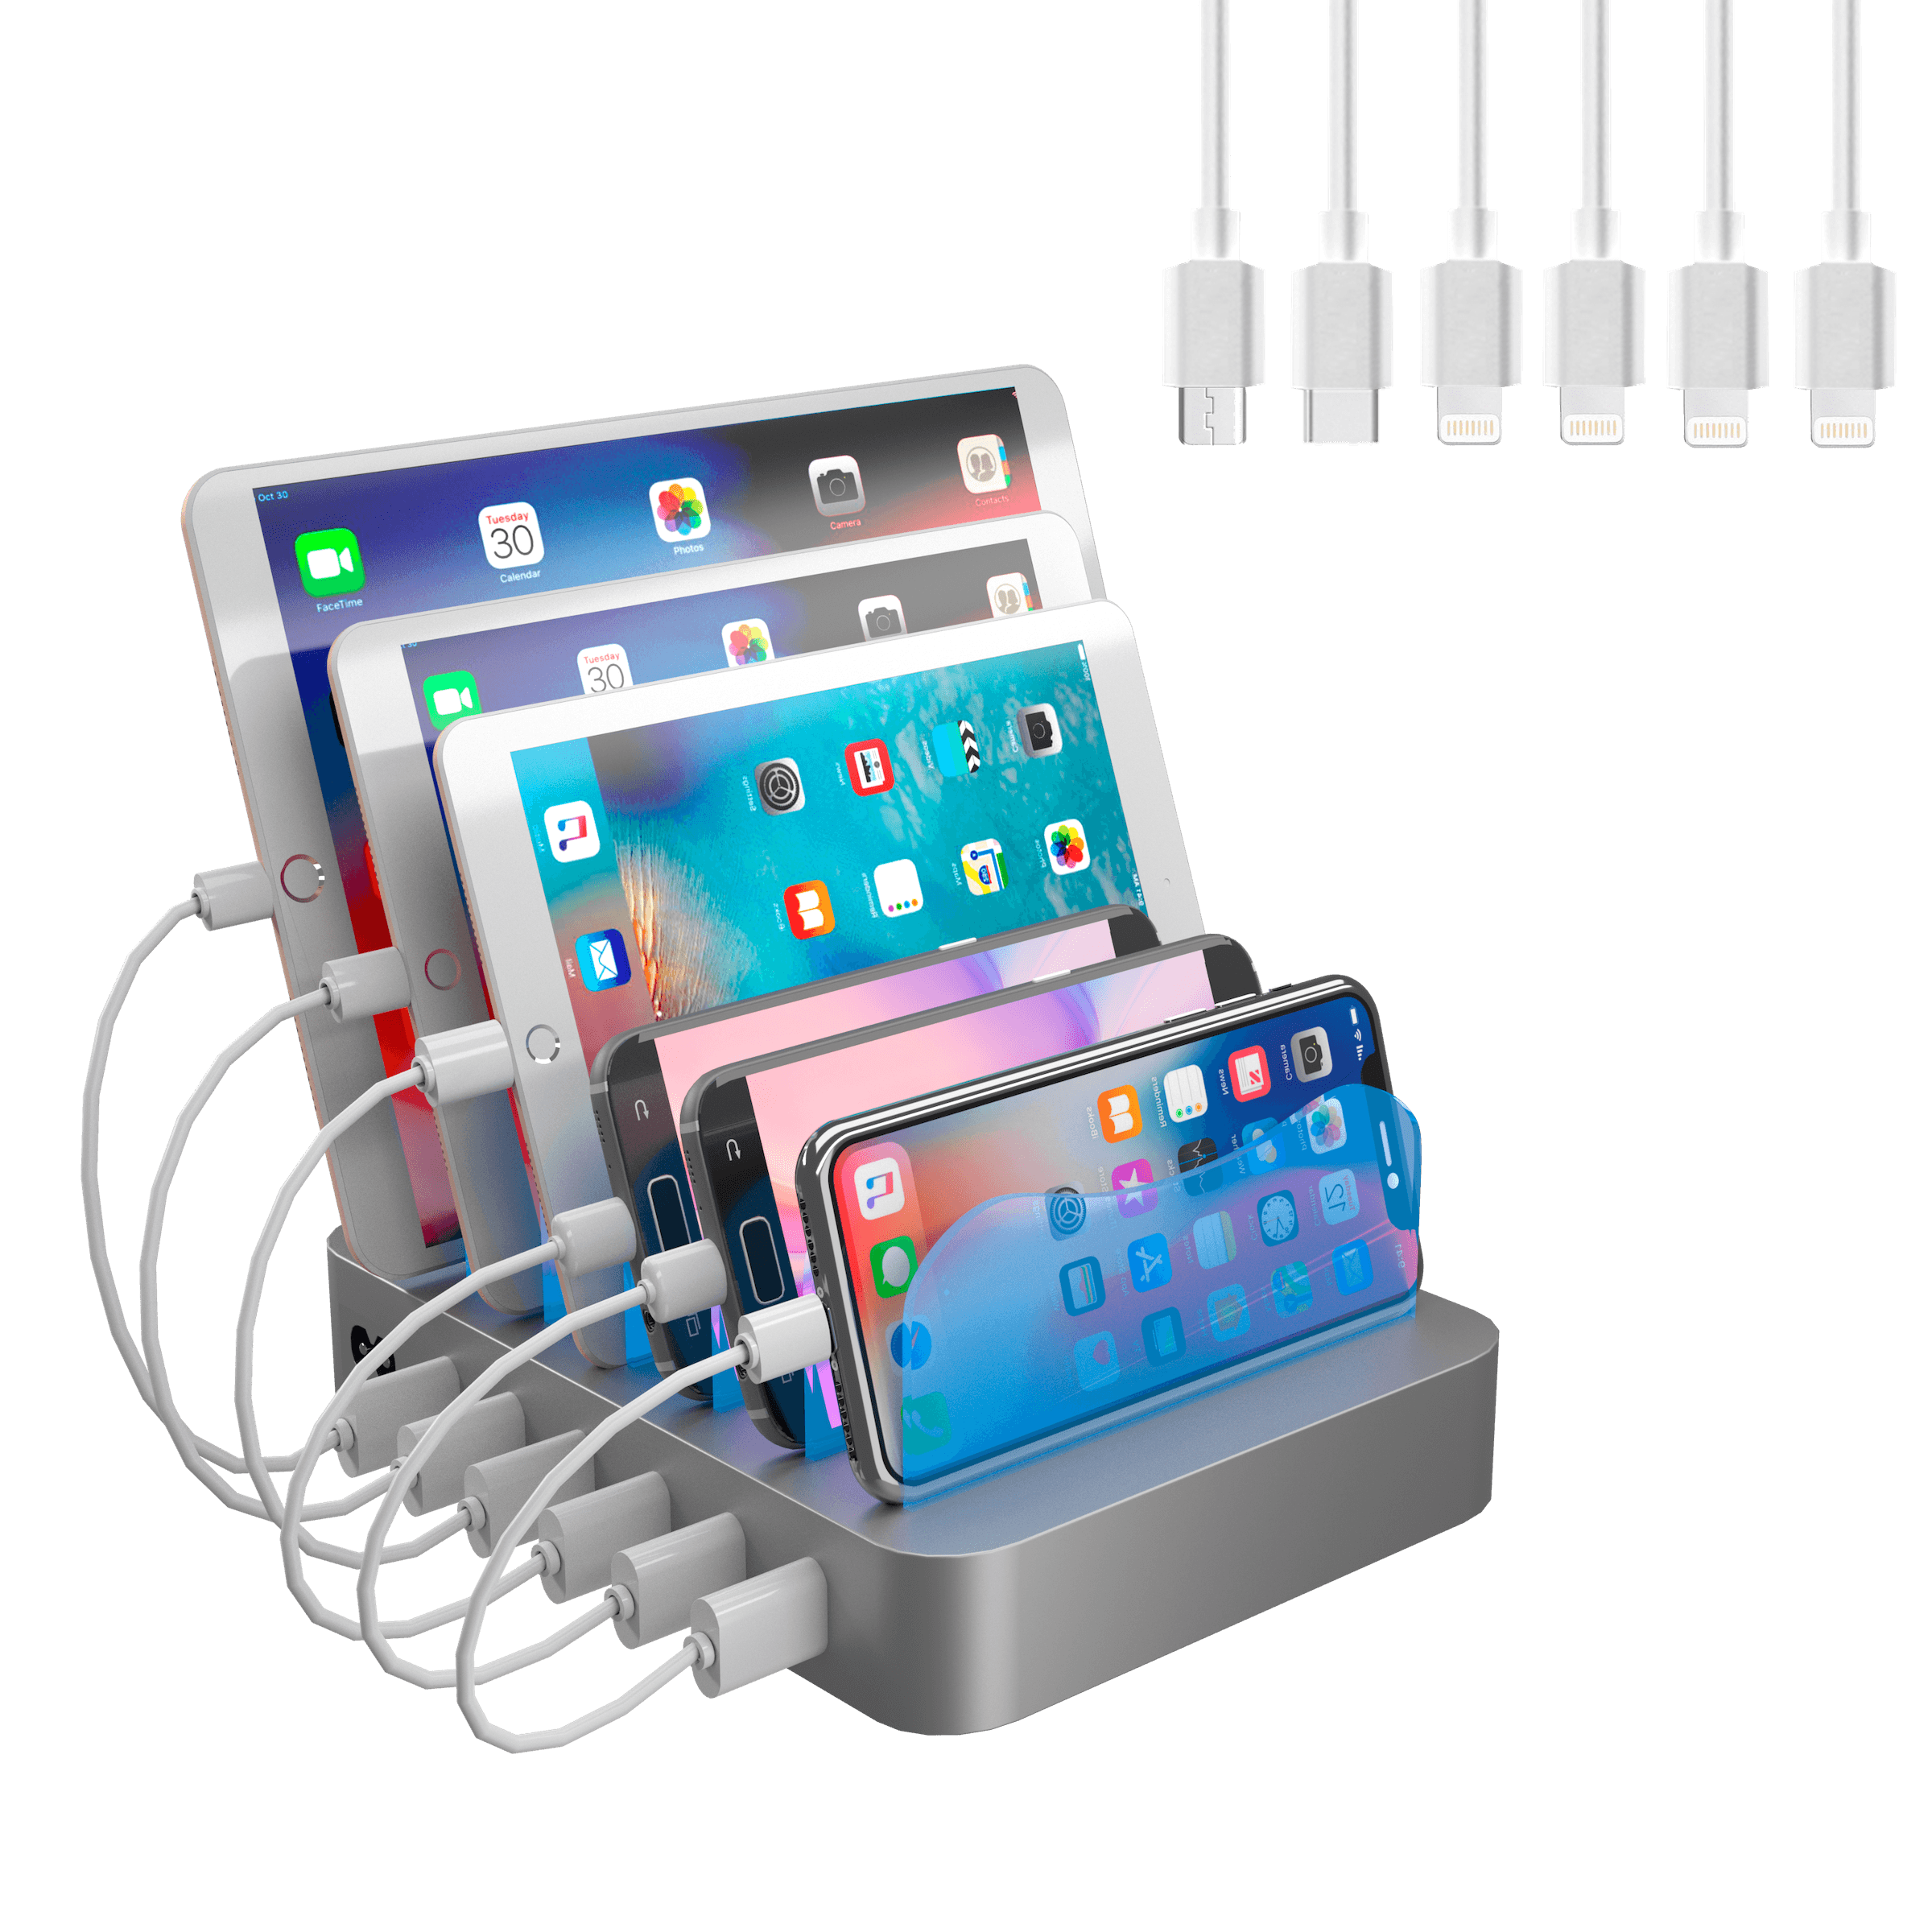 Hercules Tuff Charging Station - 6 Port Universal USB - short cables included - 3 different types